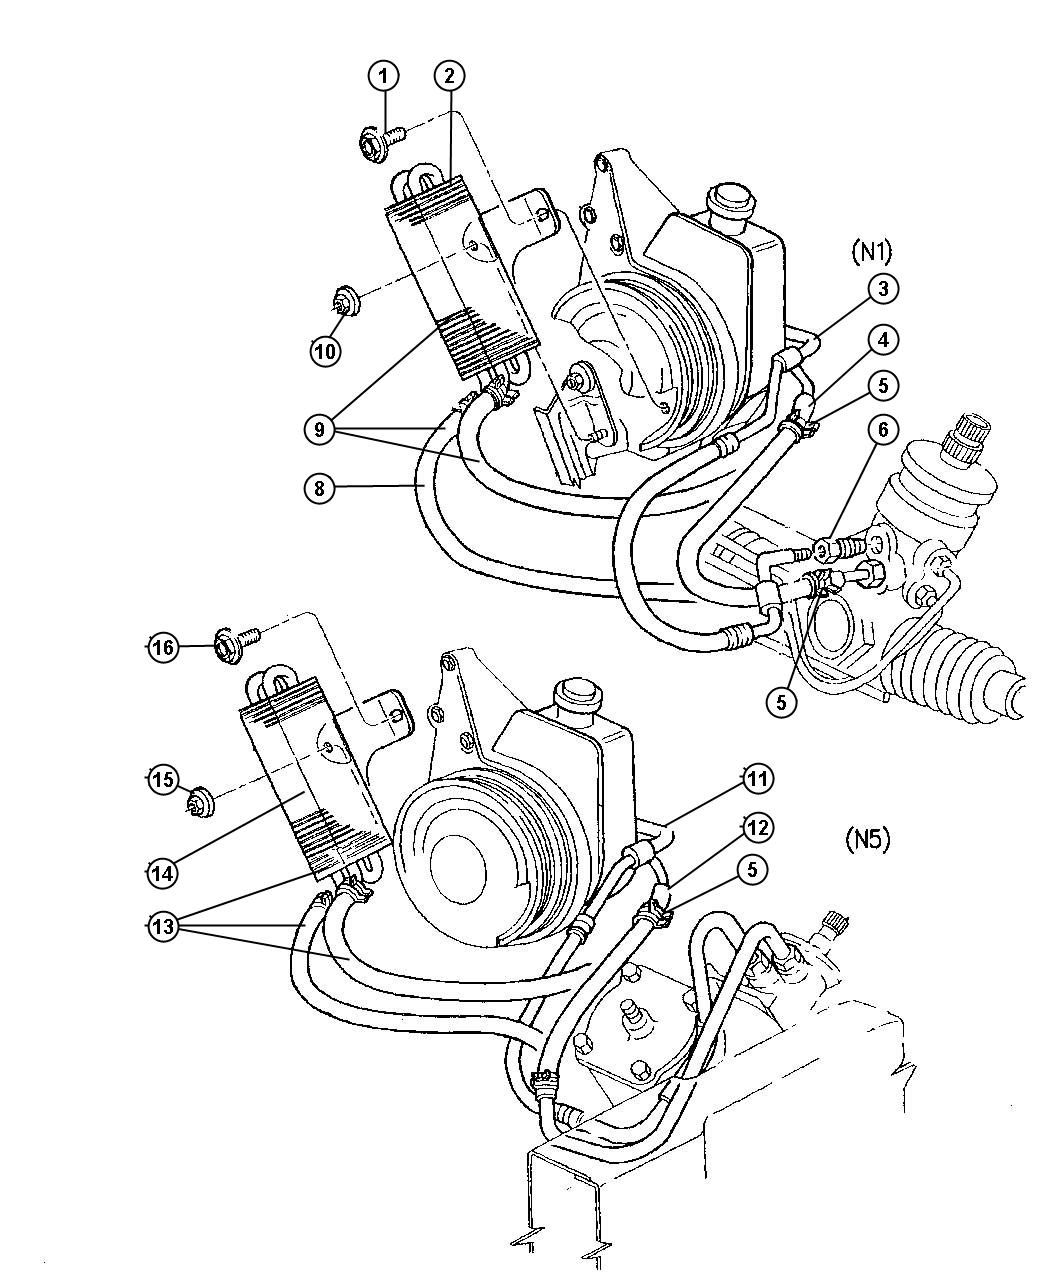 2000 Dodge Dakota Power Steering Diagram on 2002 Dodge Intrepid